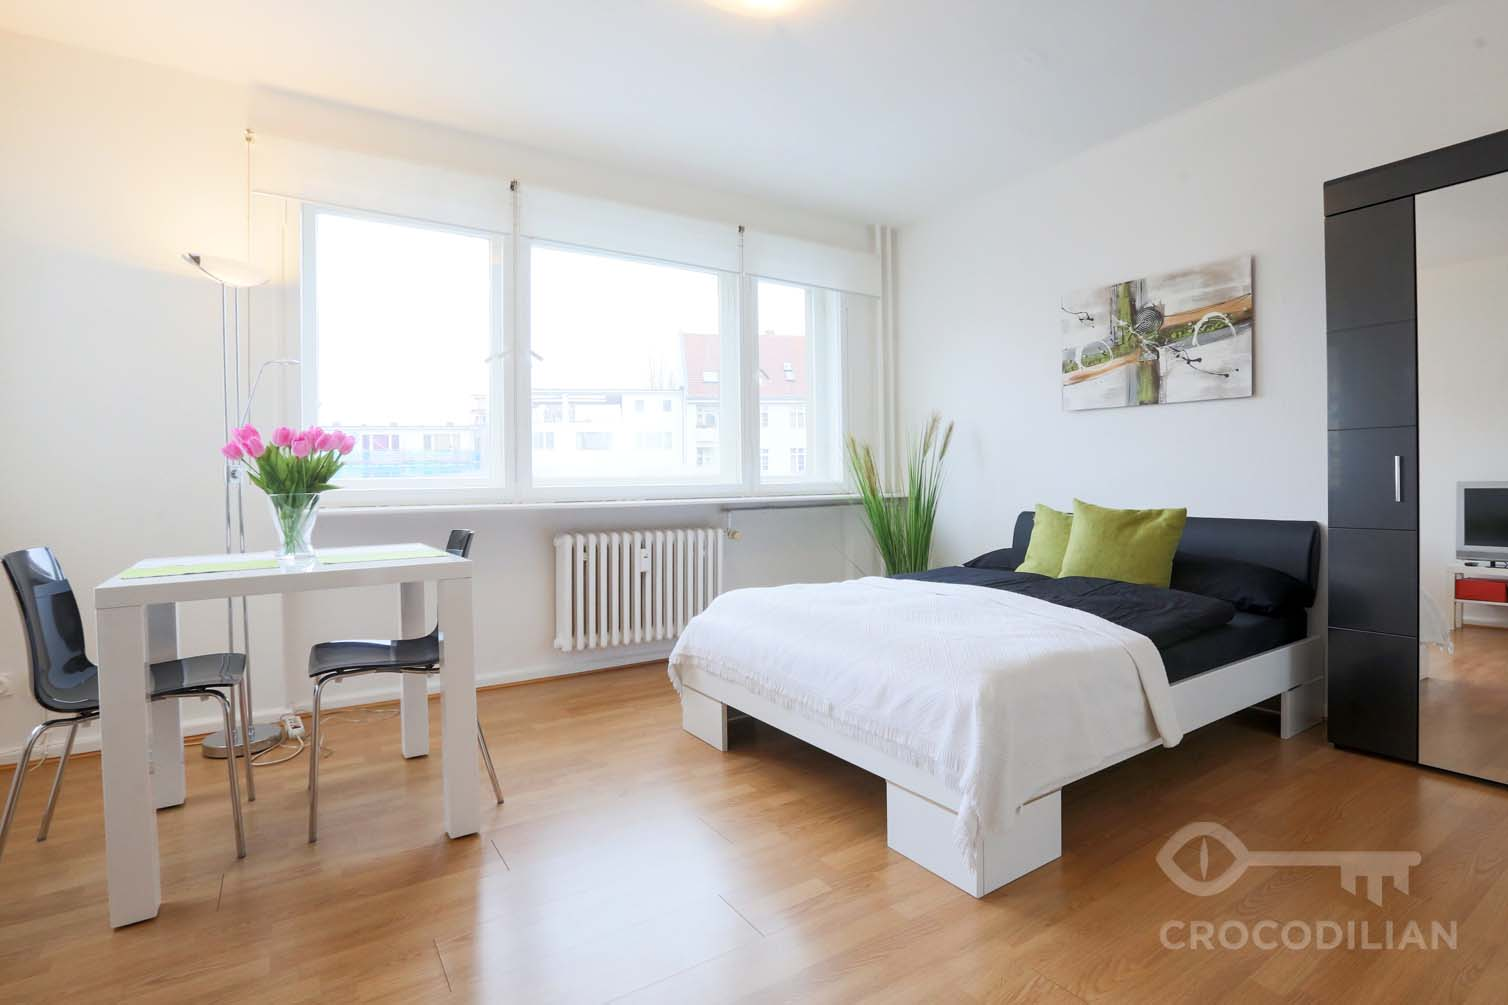 Practical 1-Room Flat, Parking on Request, Nestorstr.